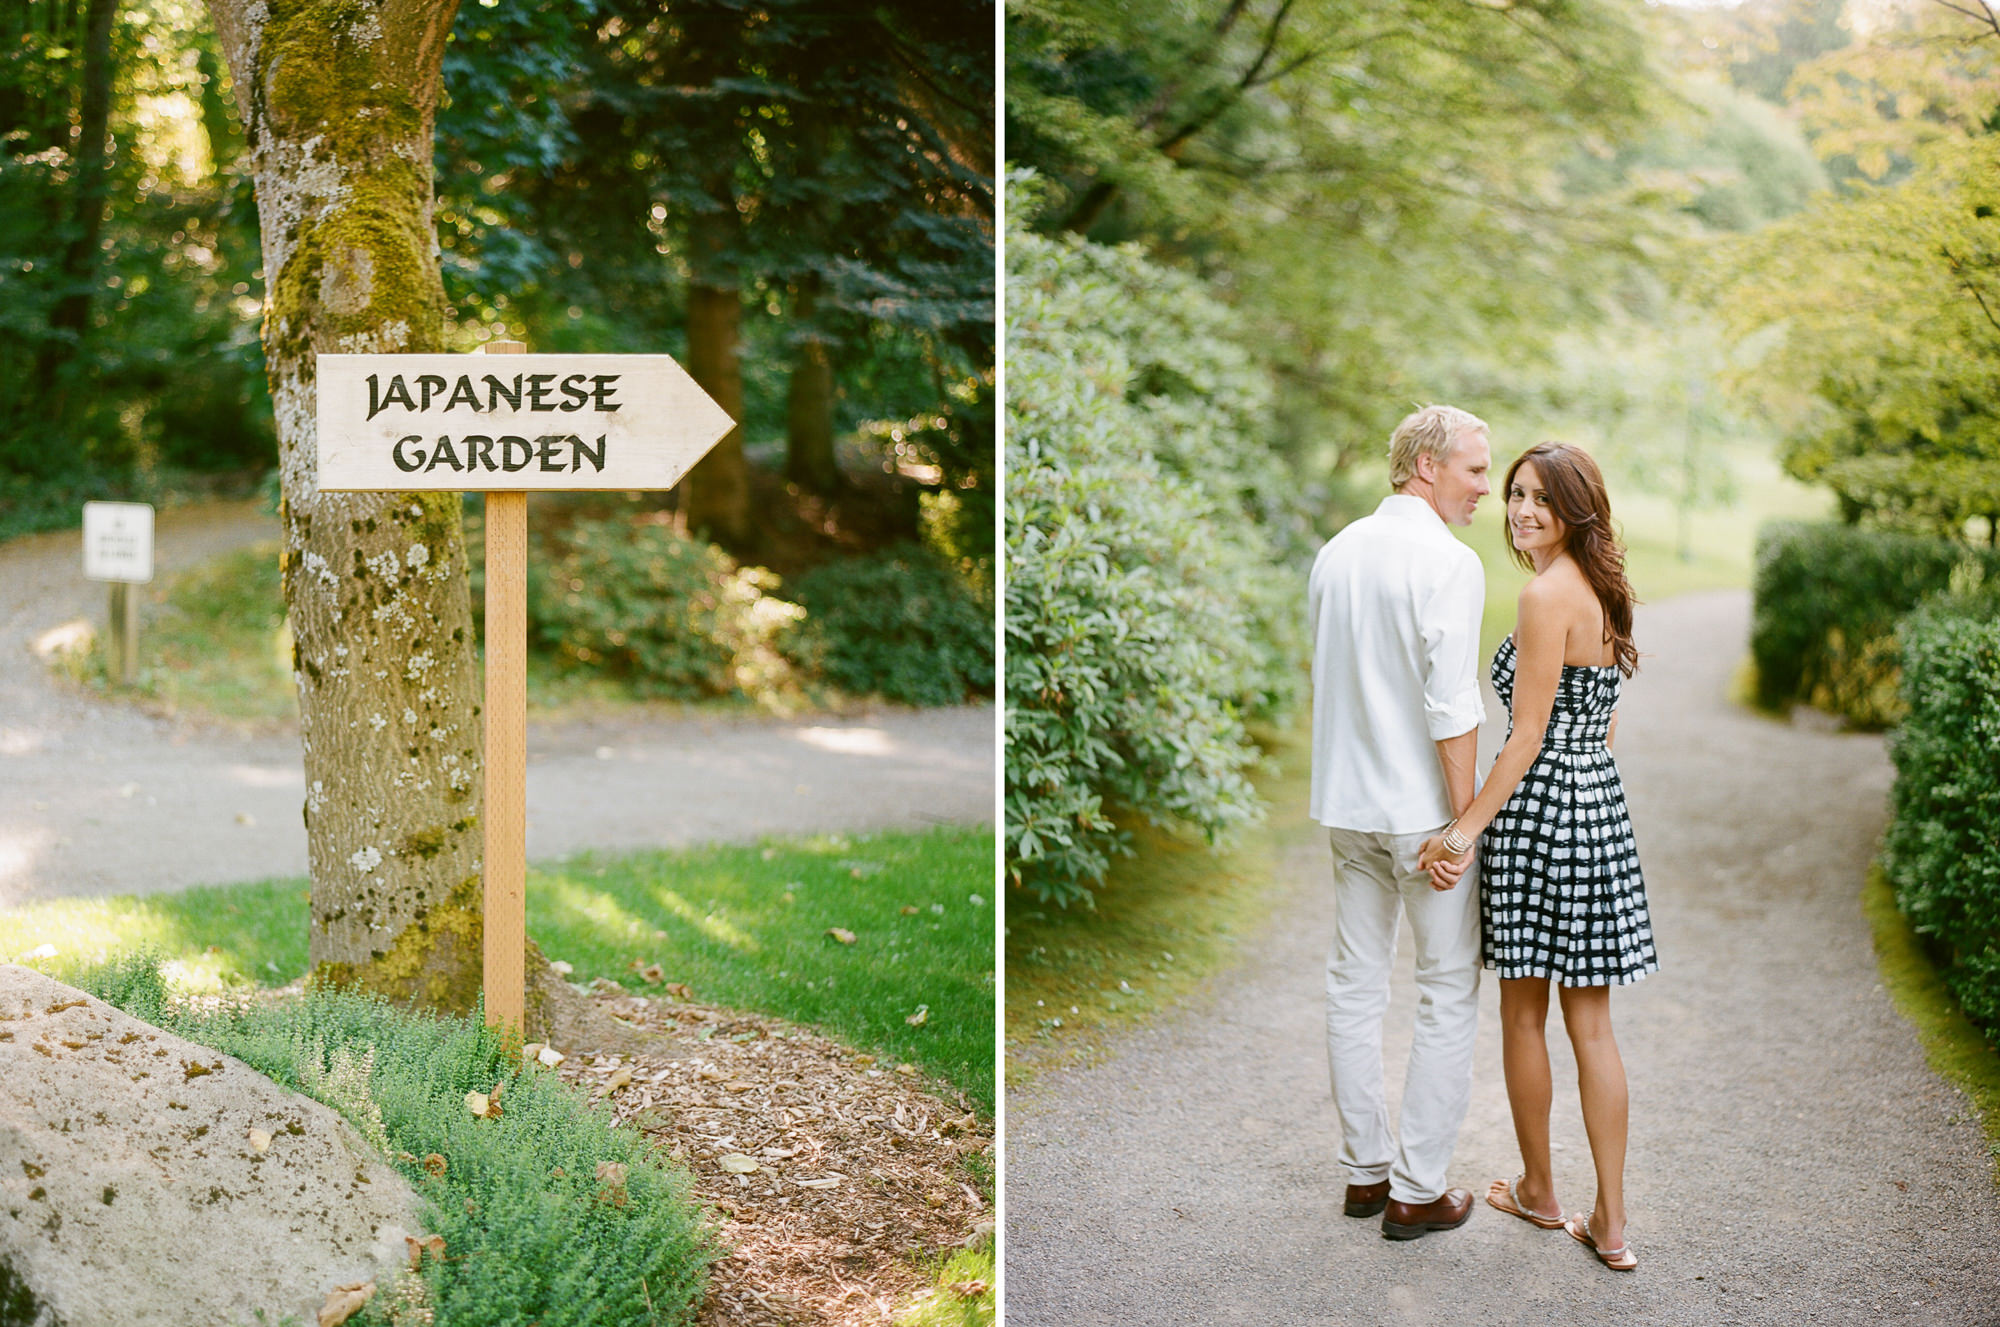 Japanese Botanical Gardens Engagement Session in Seattle, WA: Noree and Chris